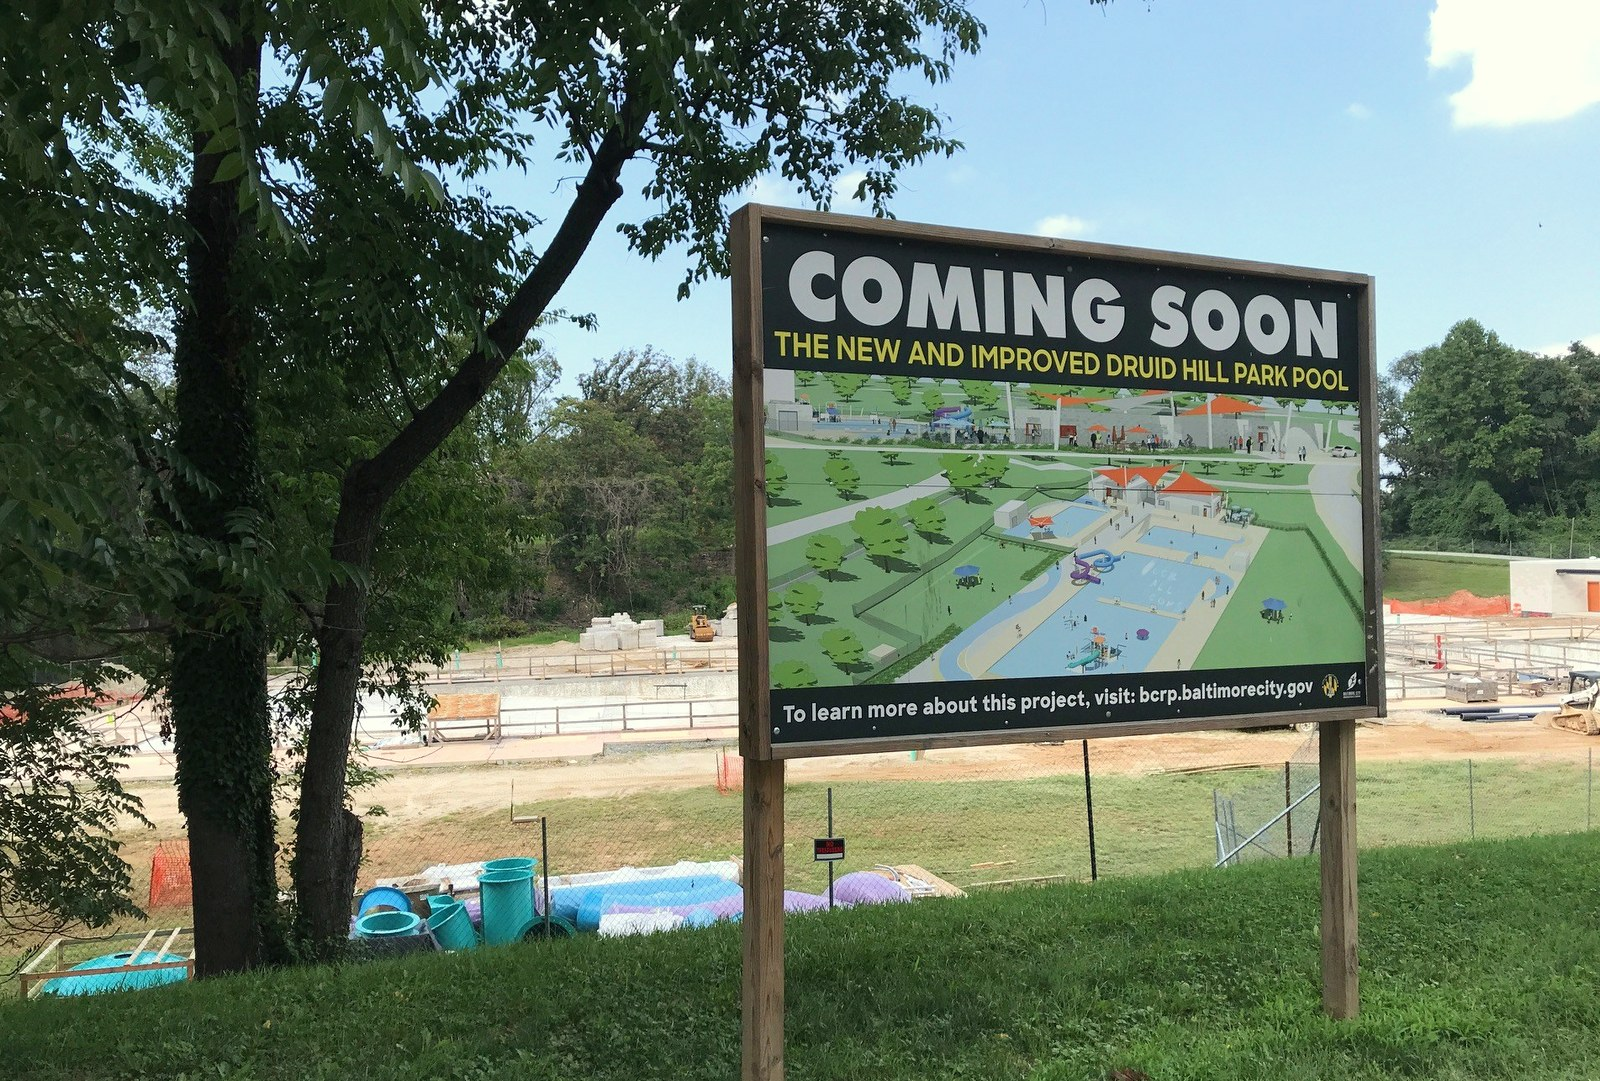 The Druid Hill Park pool under construction by Plano Coudon. (Mark Reutteer)